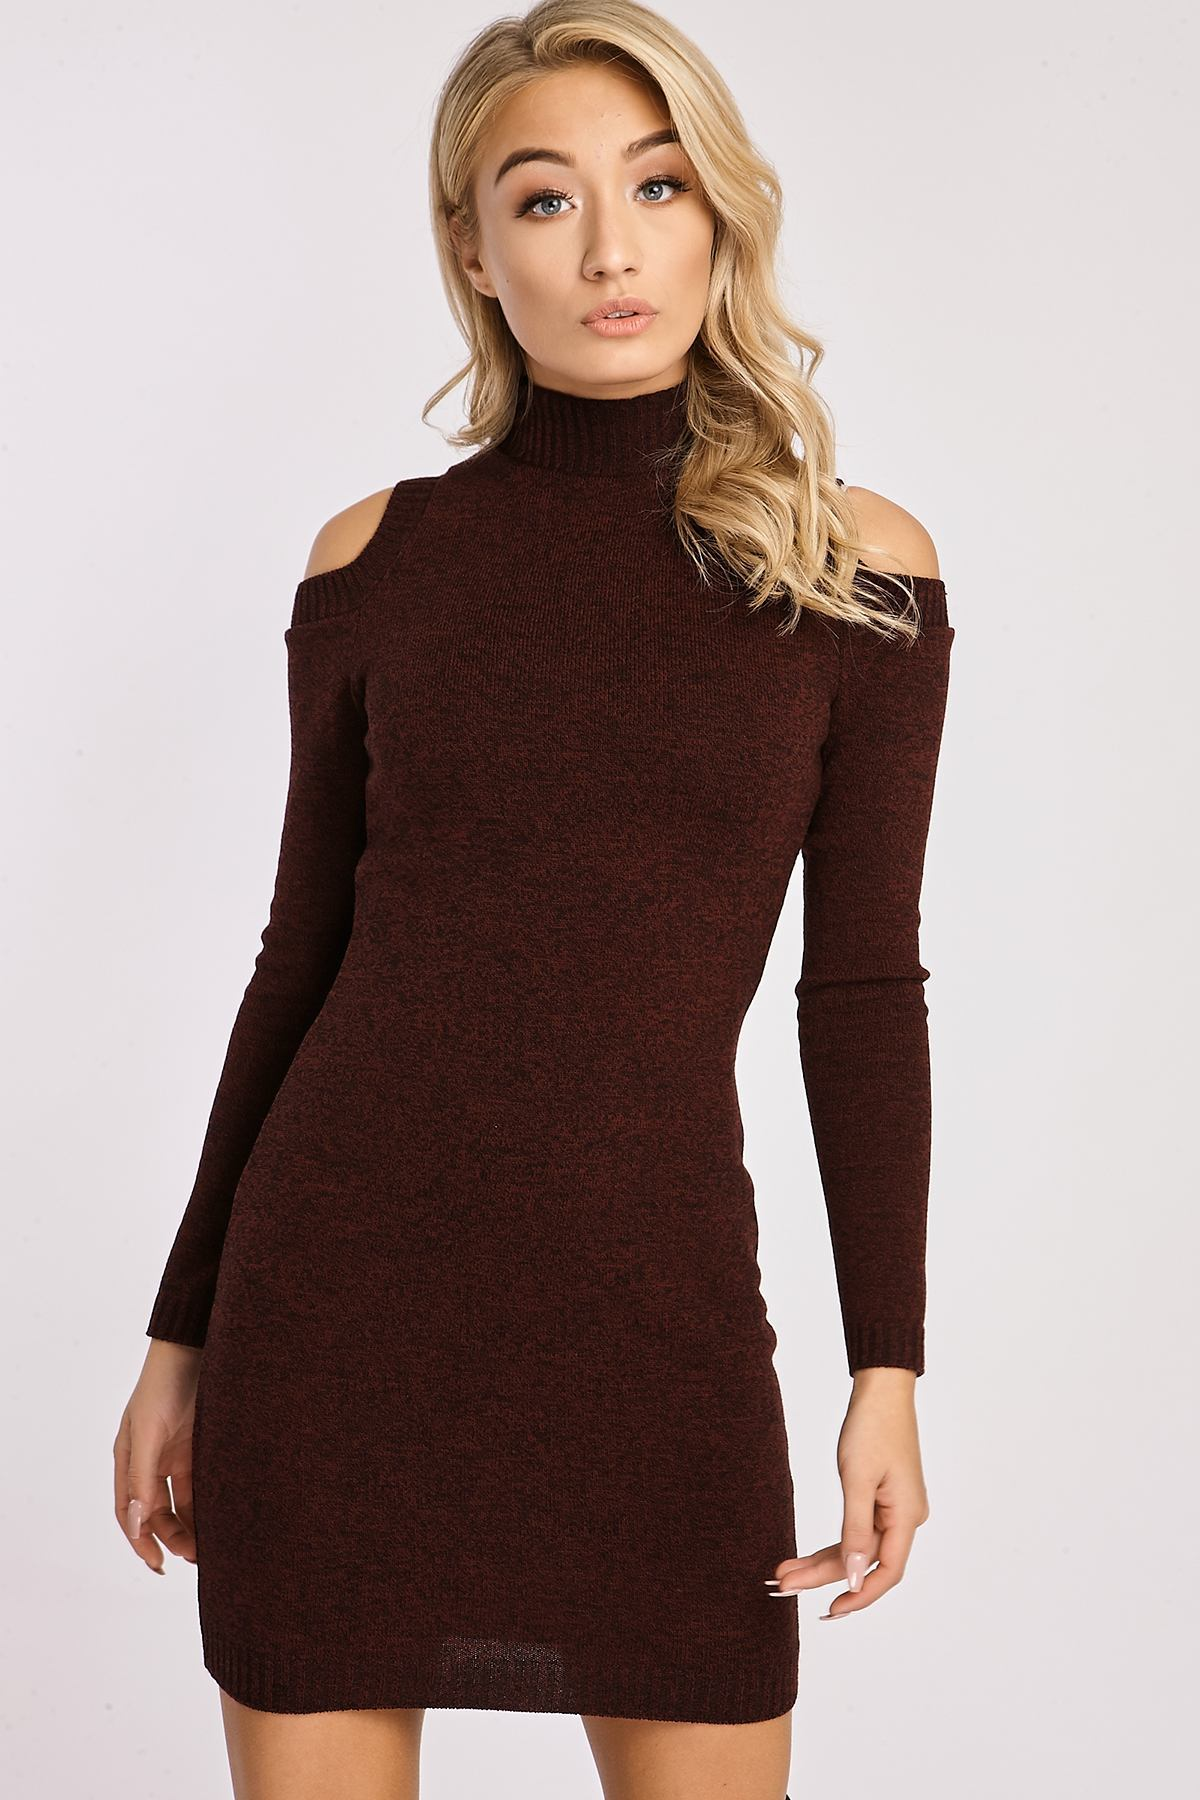 Wine Dresses  Adeline Wine Knitted Cold Shoulder Dress